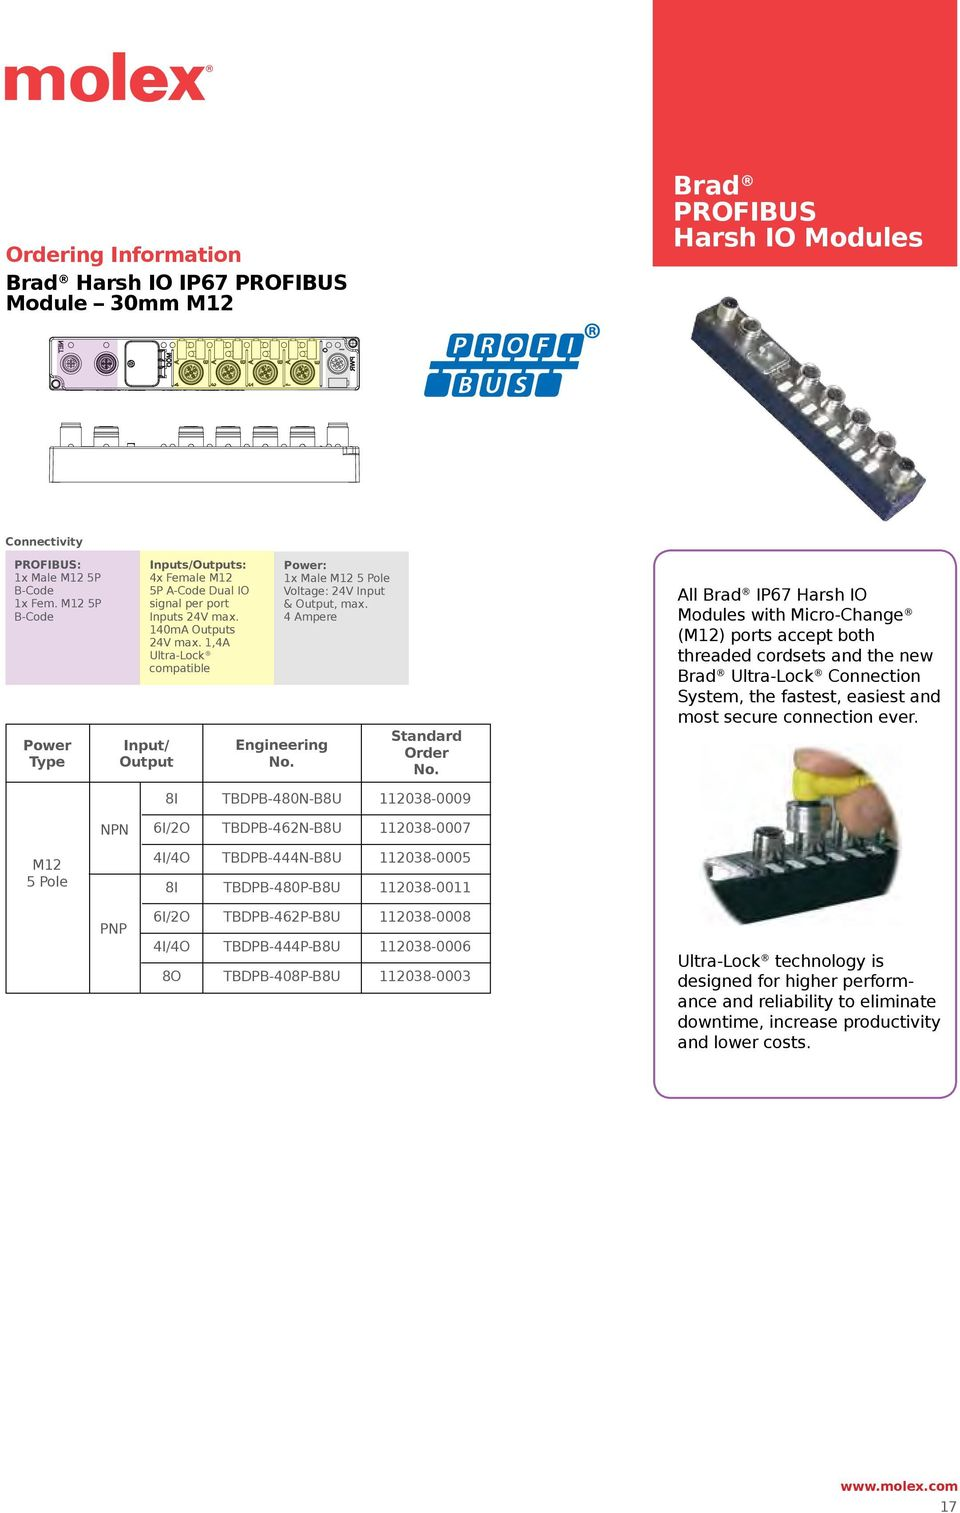 1,A Ultra-Lock compatible Input/ Output Power: 1x Male M12 Pole Voltage: 2V Input & Output, max.